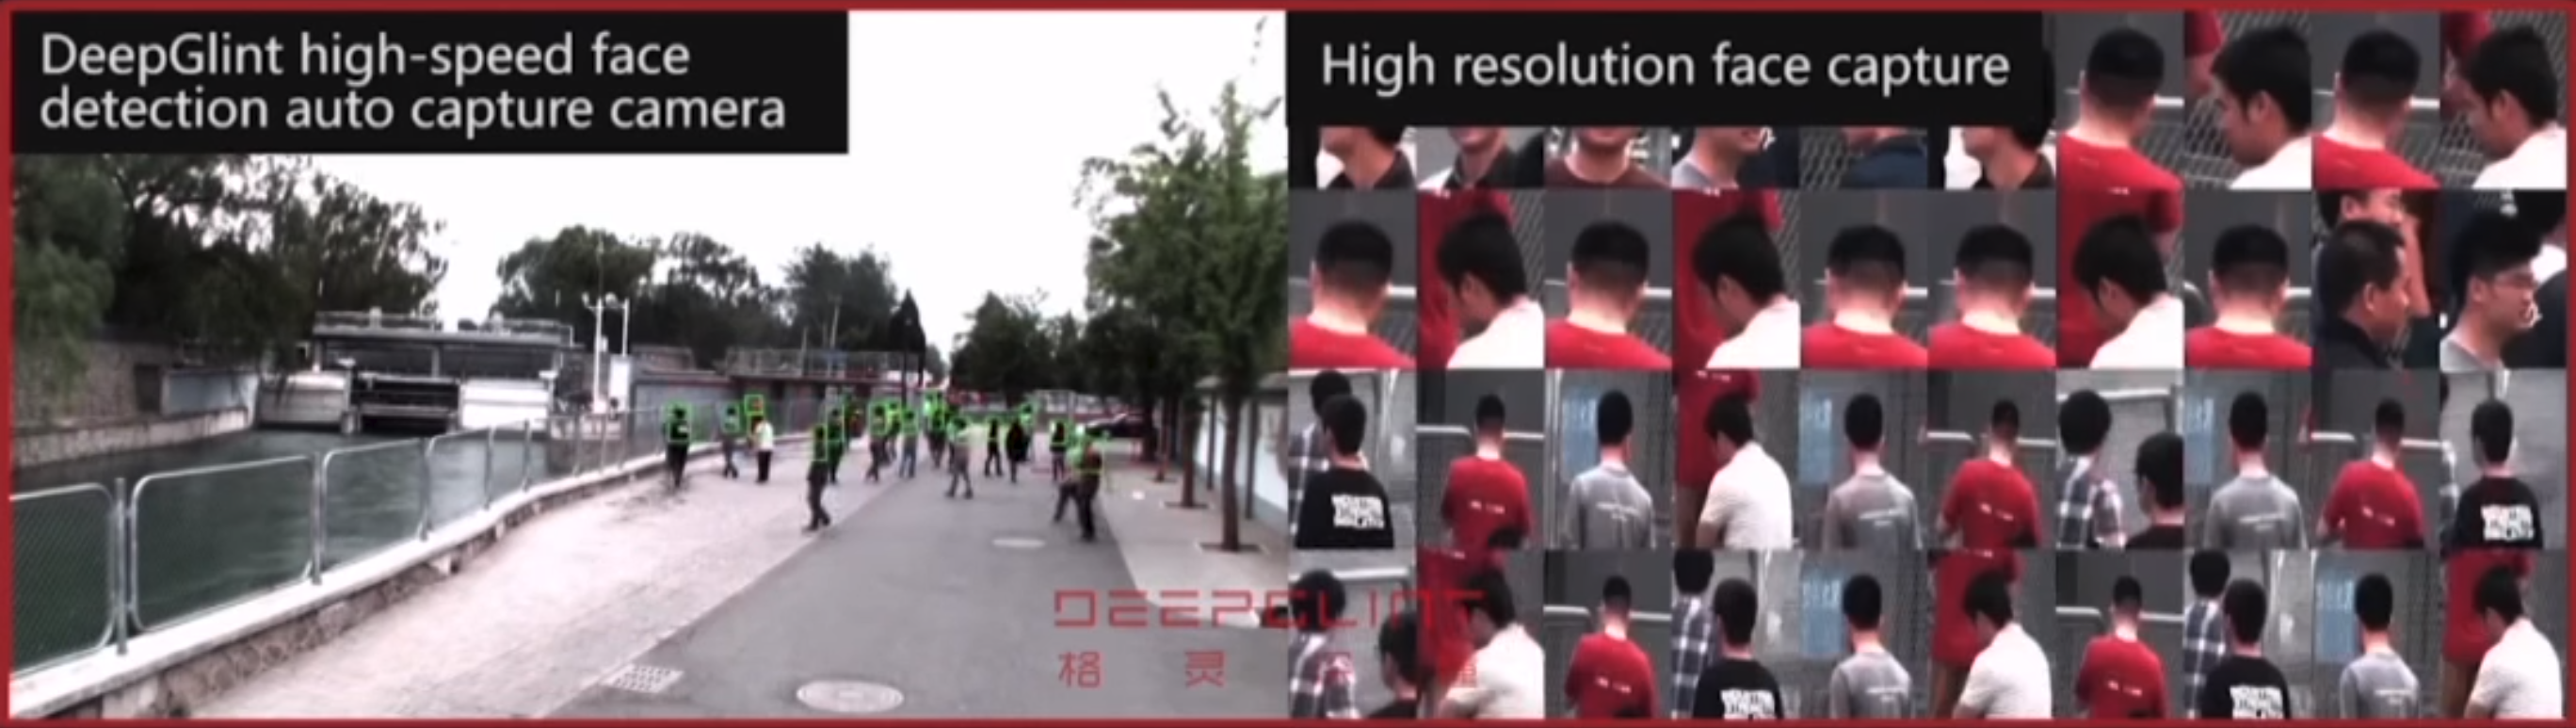 Surveillance system created by the Chinese company DeepGlint